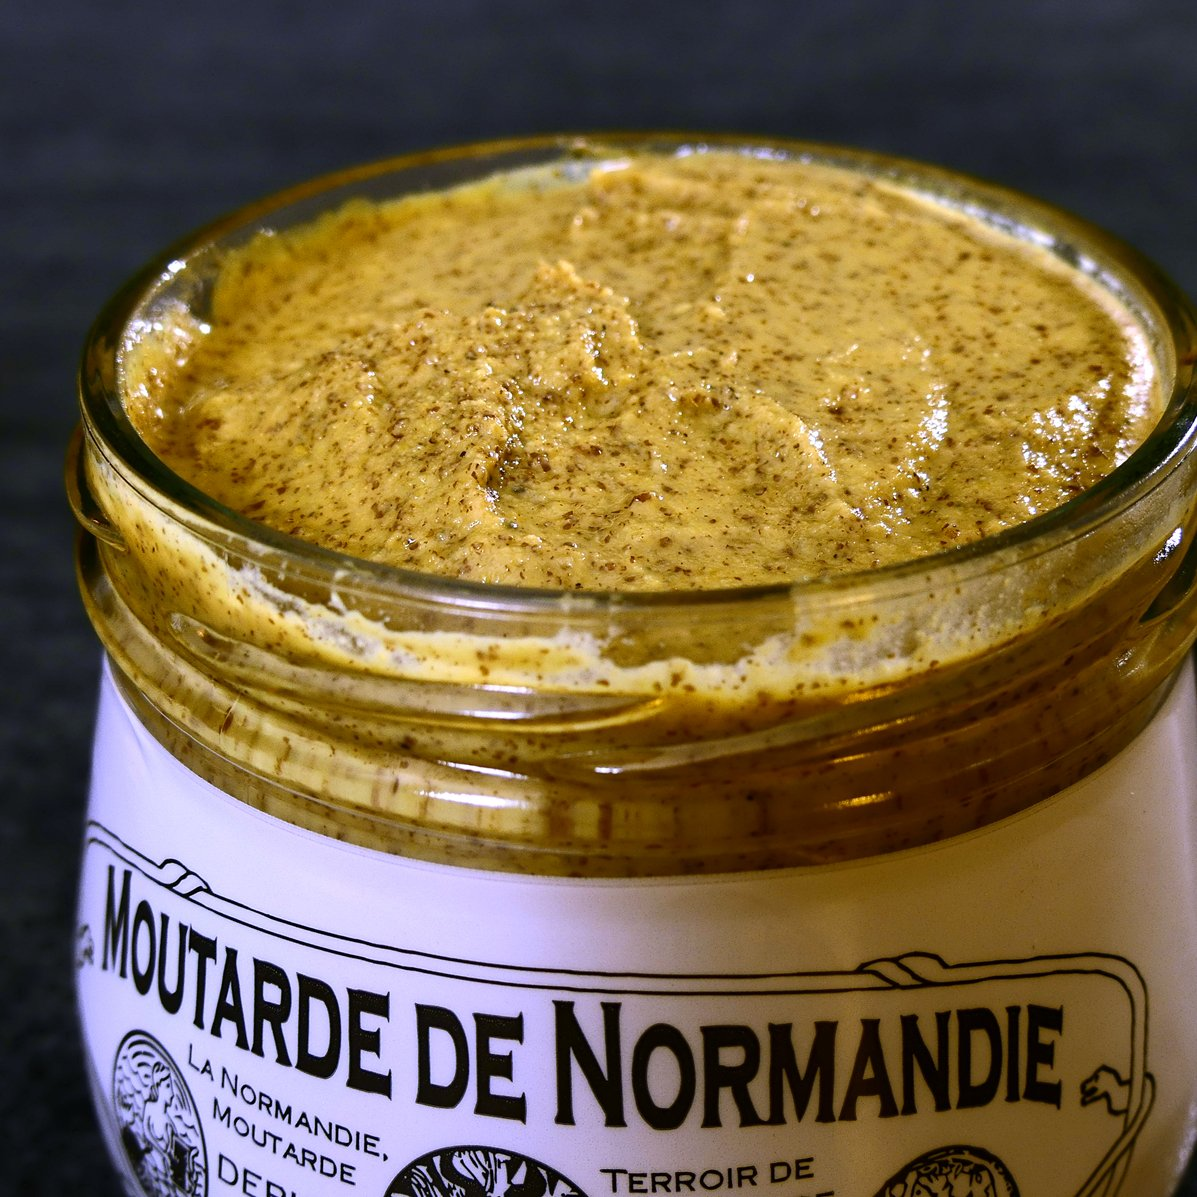 Moutarde de Normandie - Souvenir de France